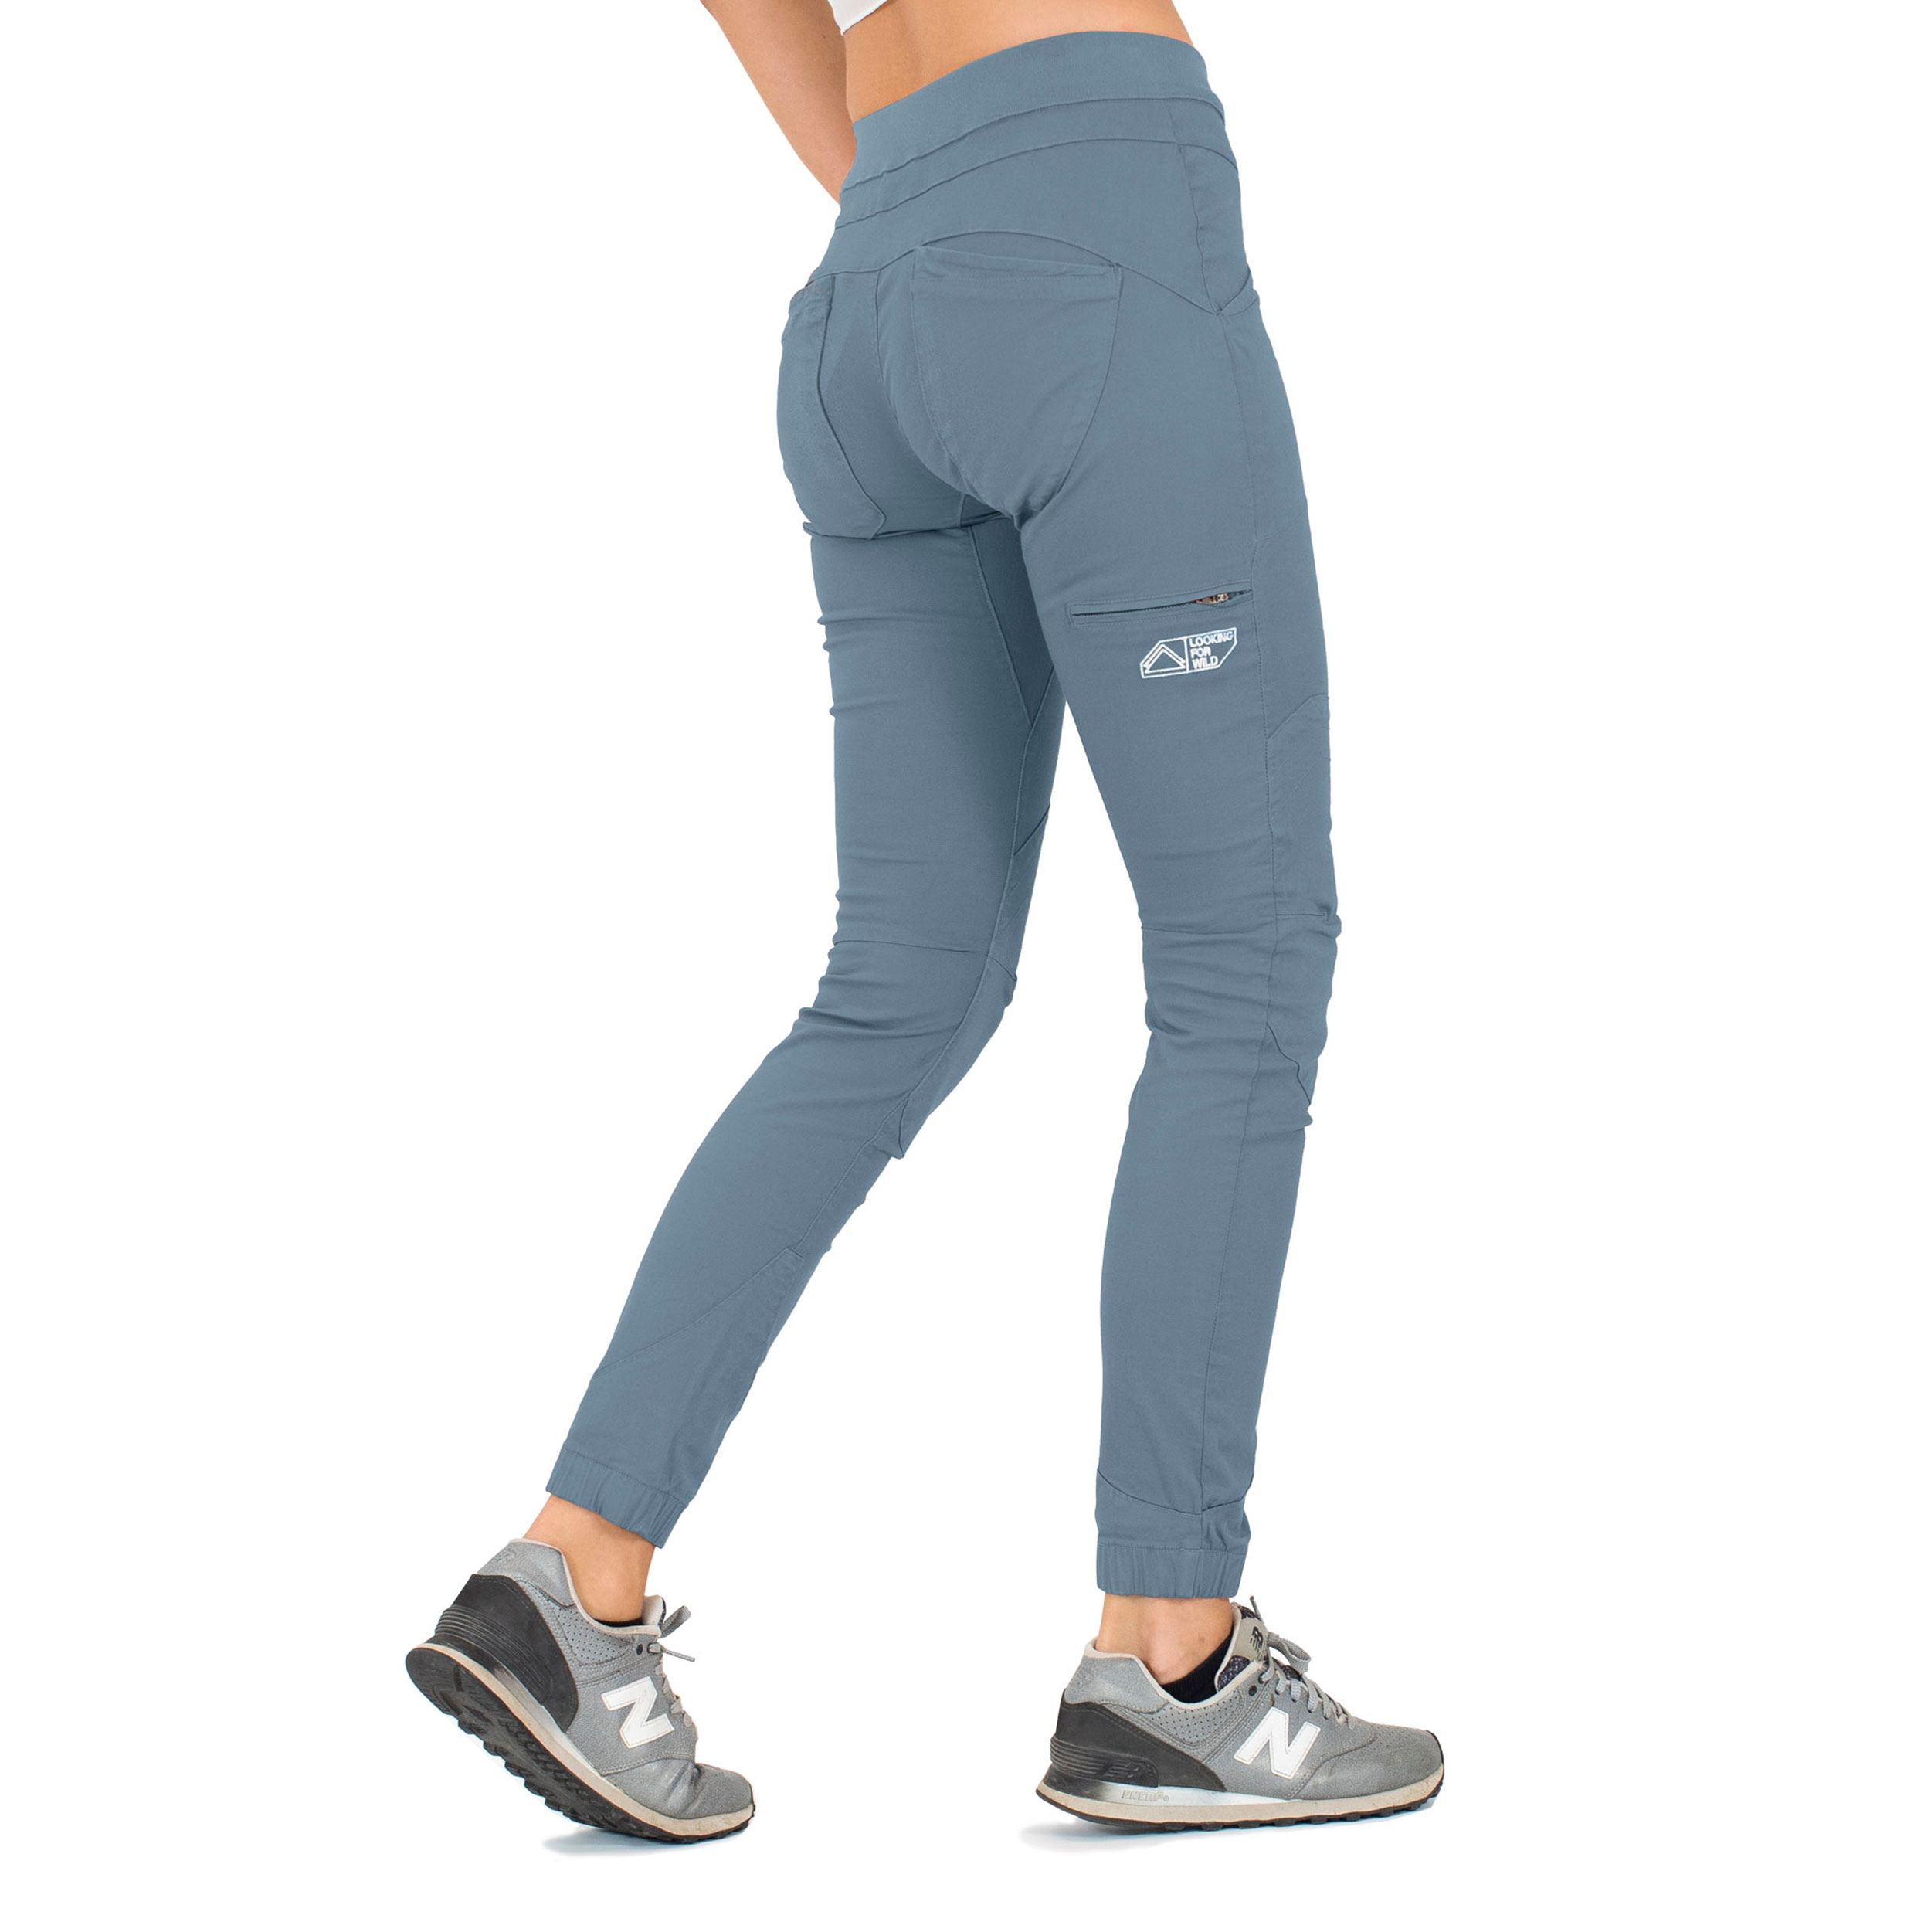 Citadel Looking Sports For Wild Pantalon Speck Blue D'escalade Femme PXZlwOkTiu